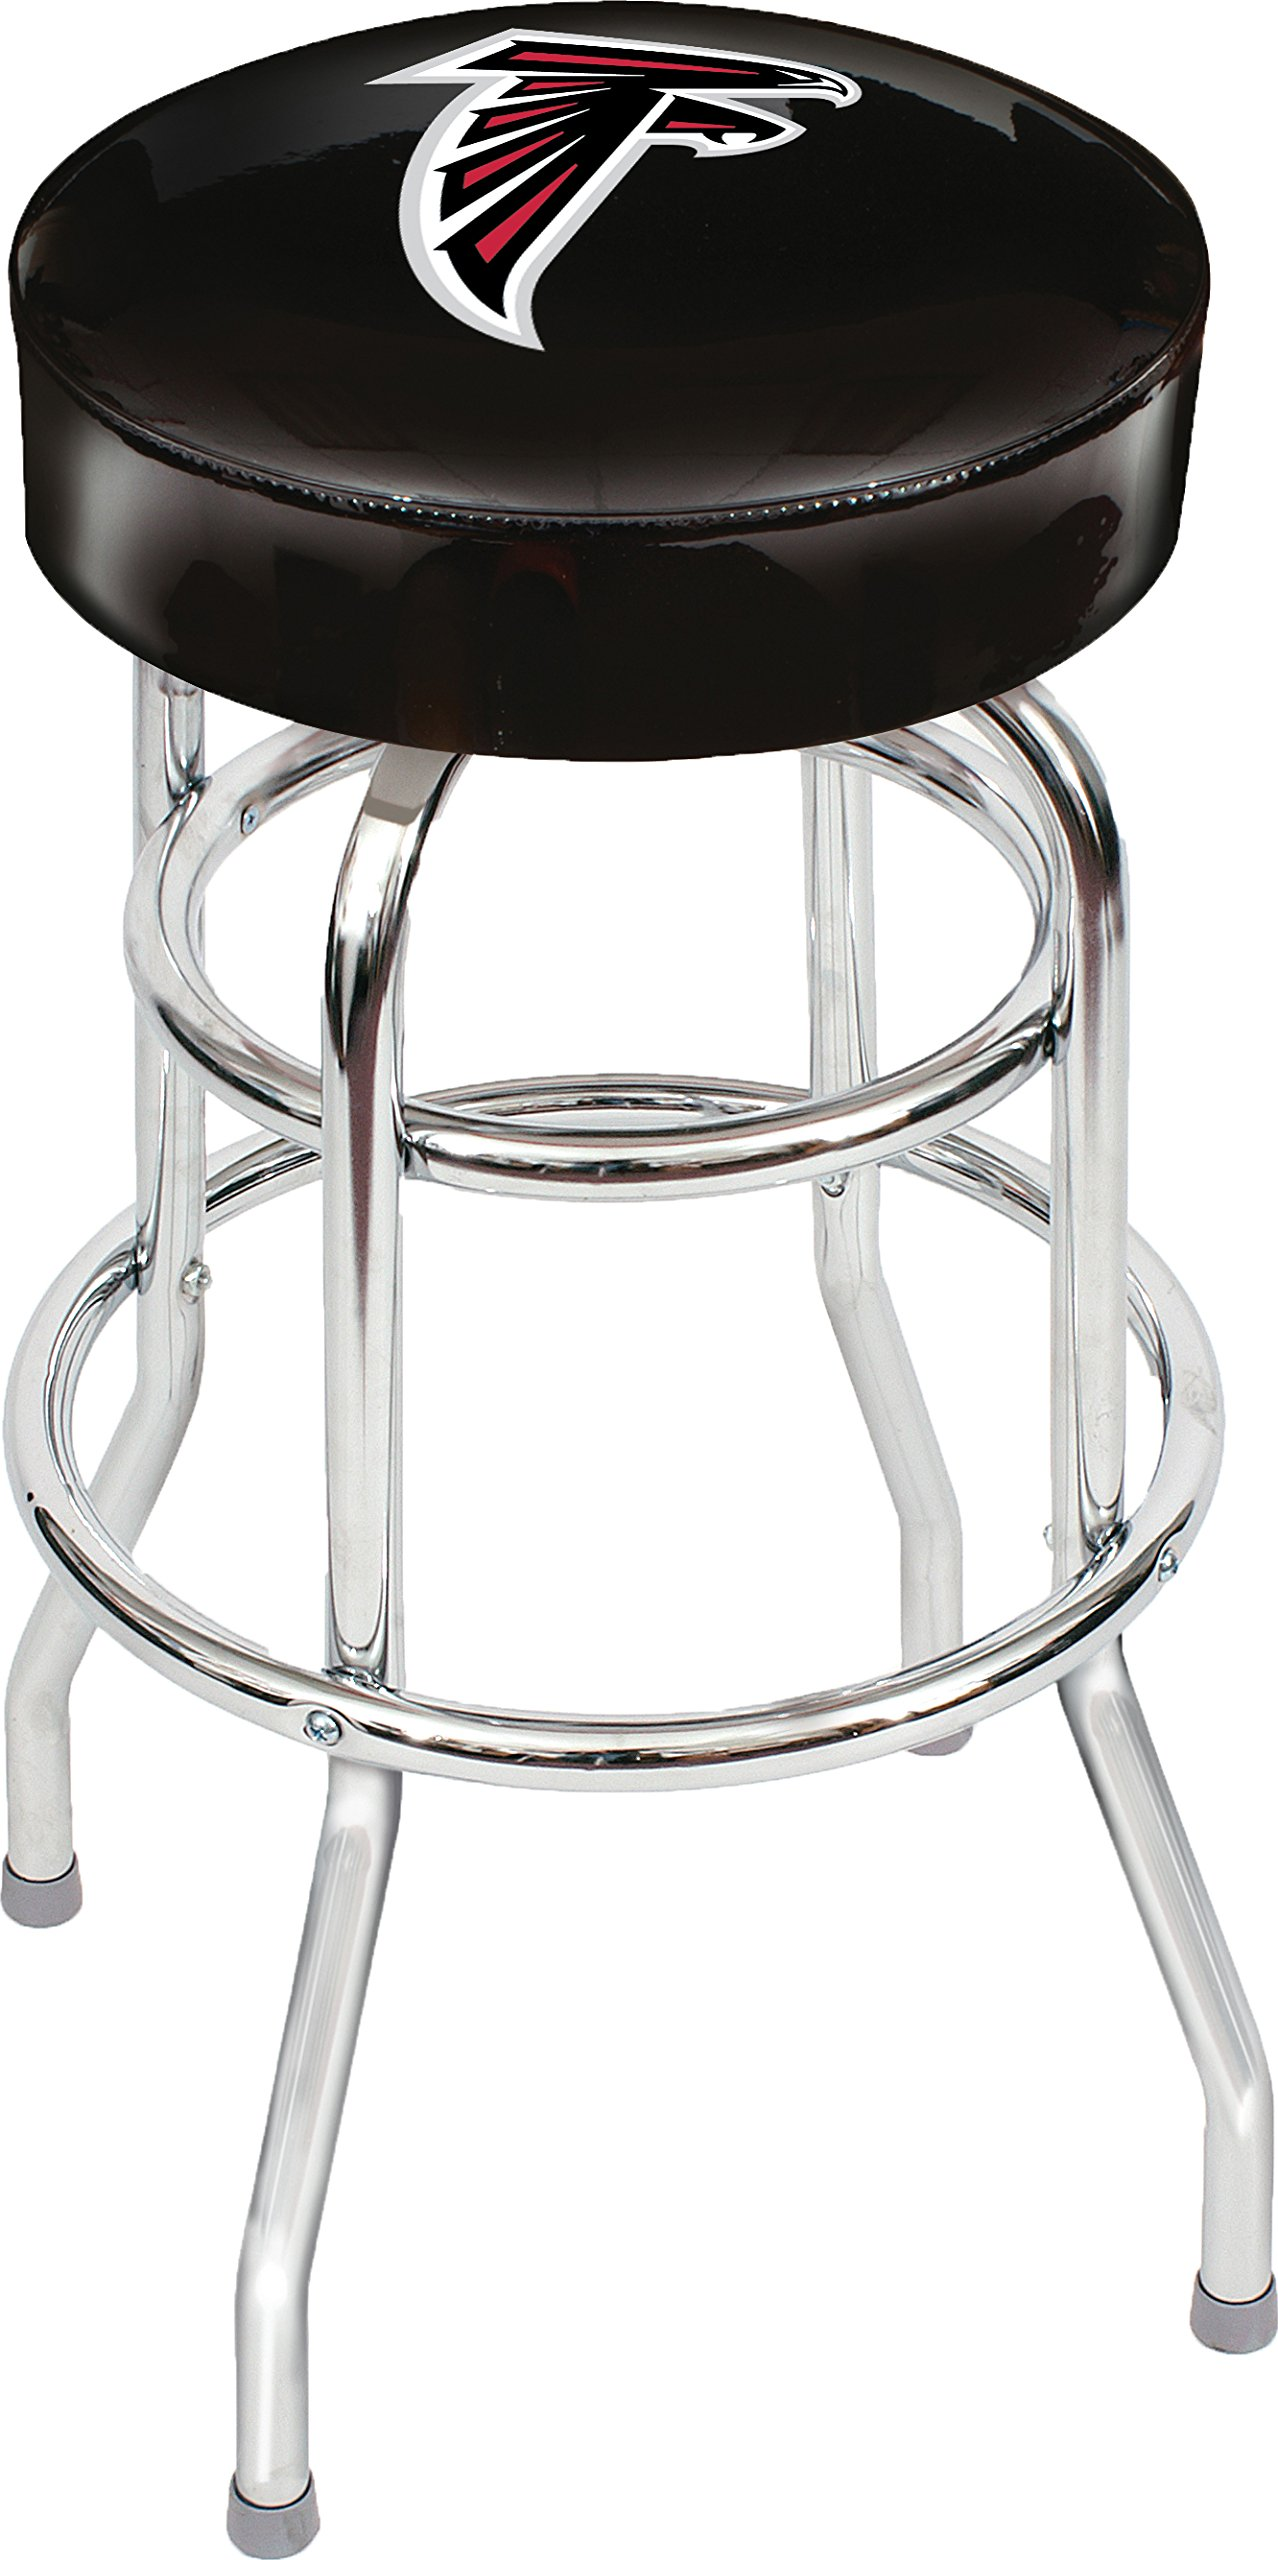 Imperial Officially Licensed NFL Furniture: Swivel Seat Bar Stool, Atlanta Falcons